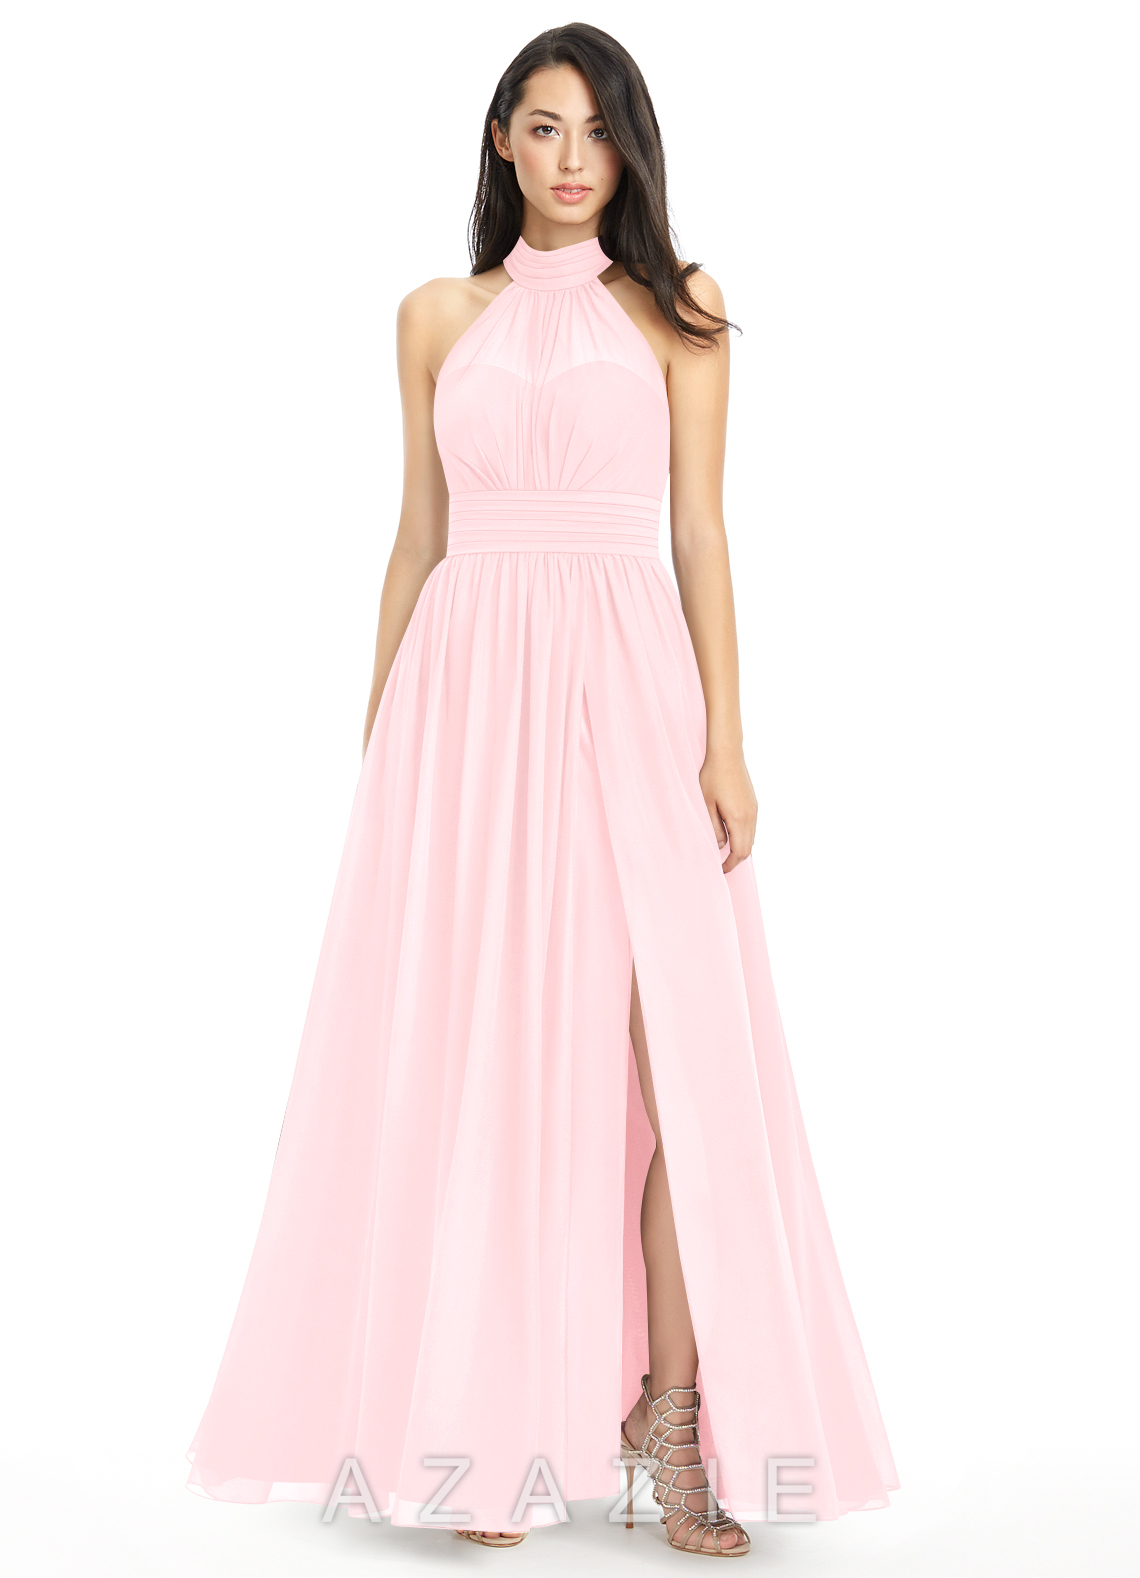 Pink Strapless Bridesmaid Dress